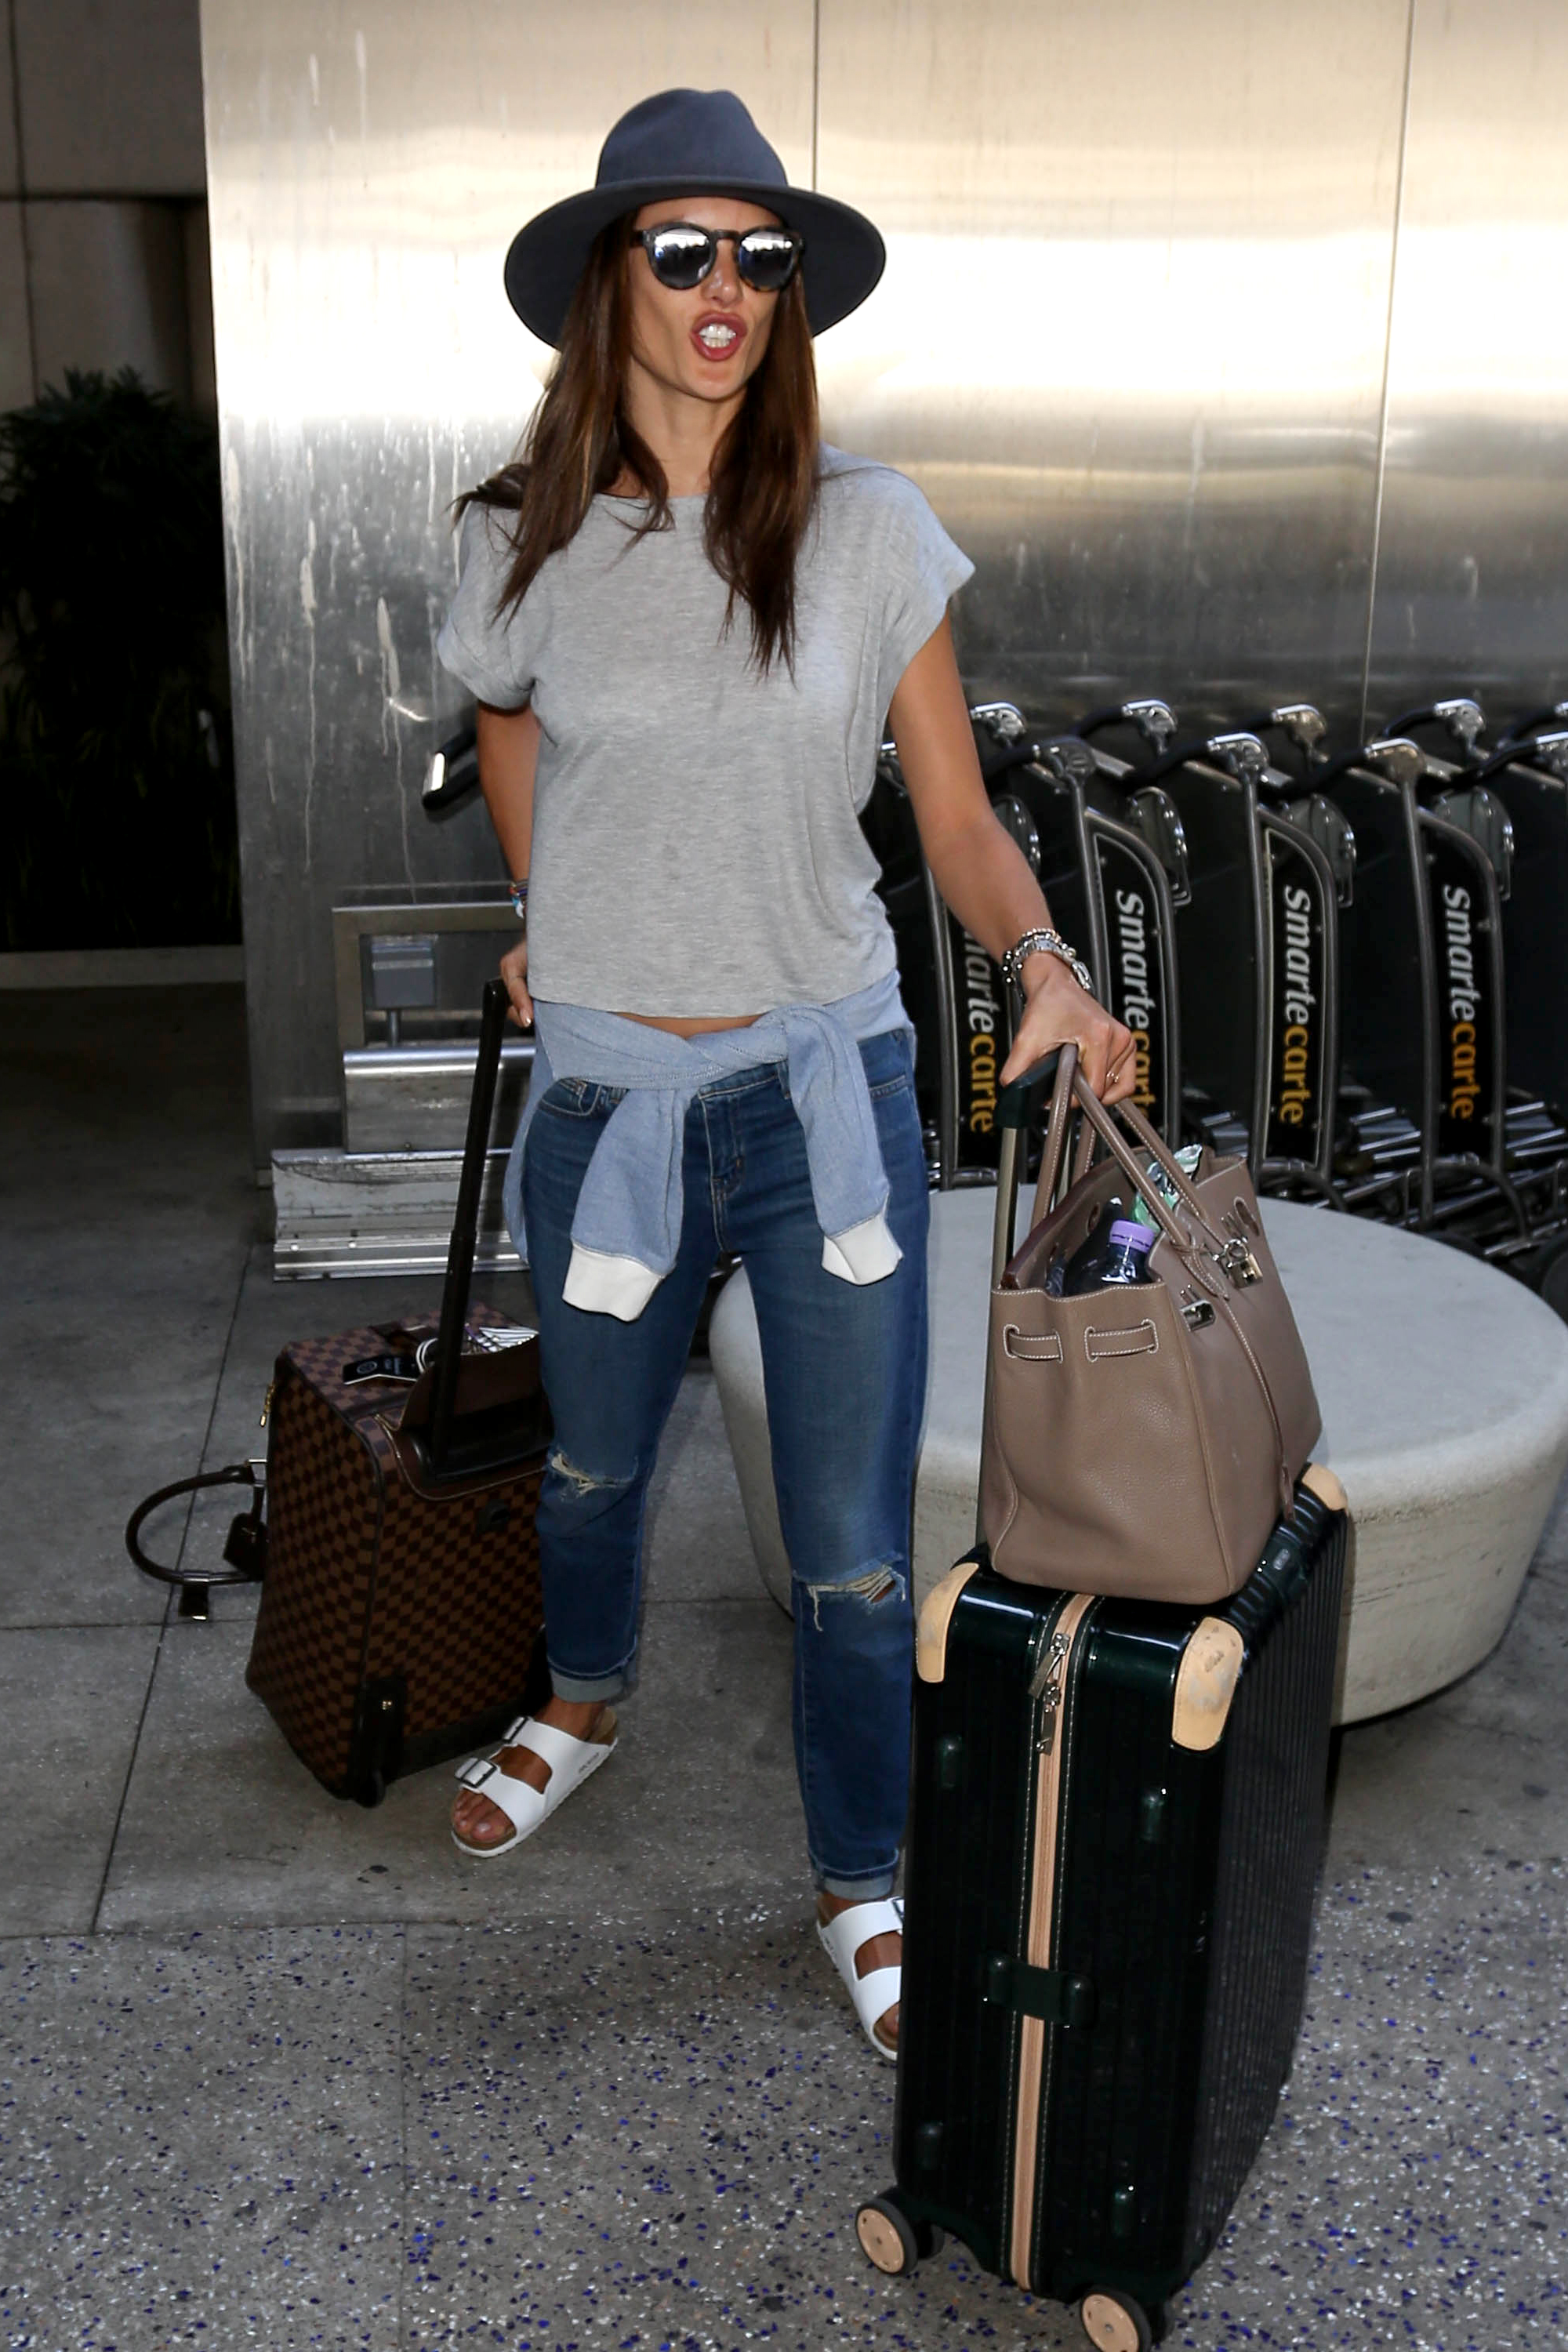 14 Celebrities Struggling At The Airport To Celebrate The